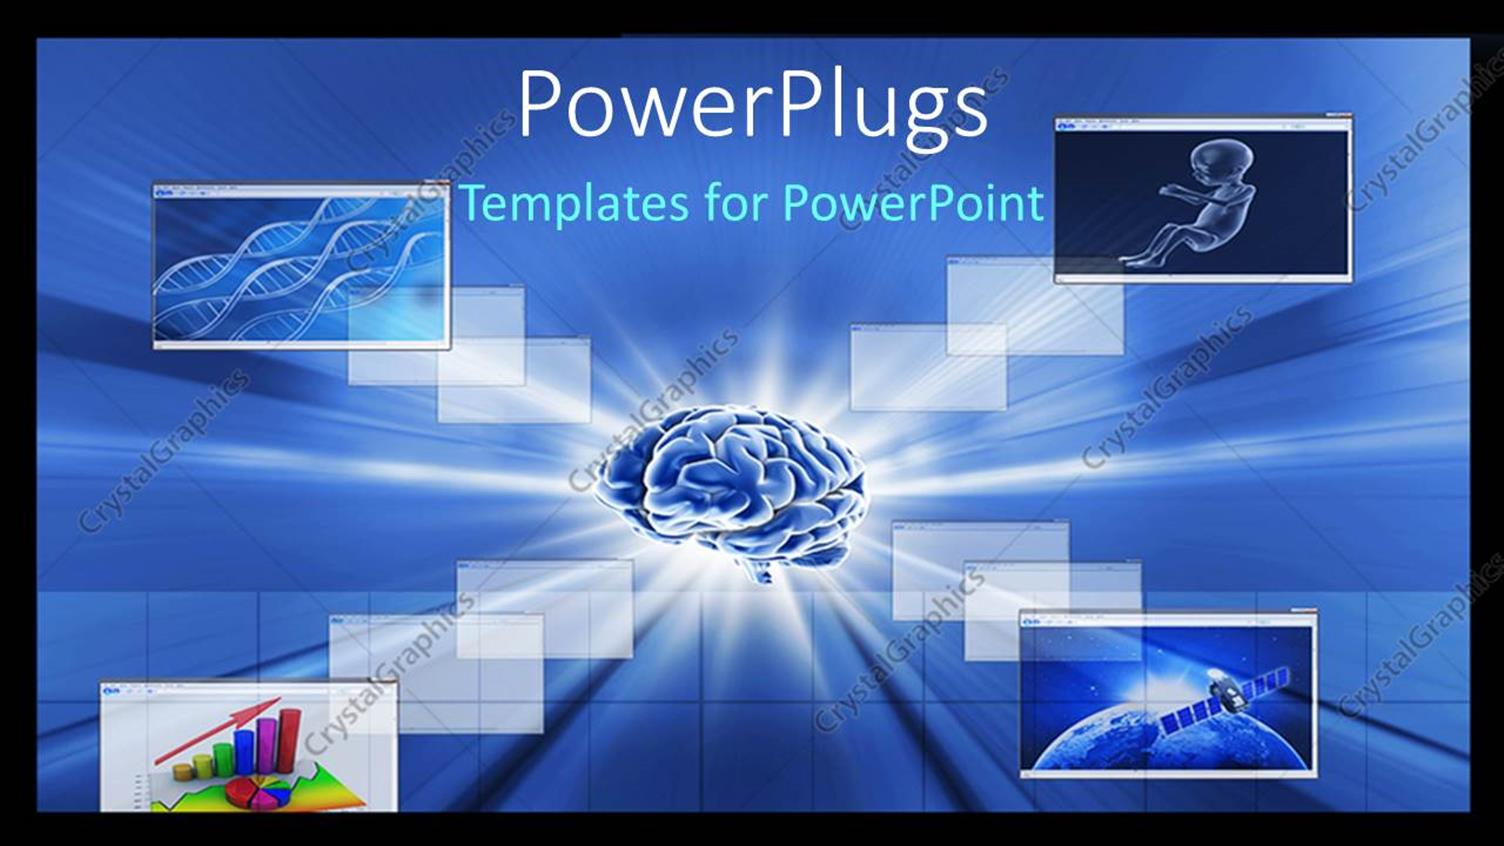 PowerPoint Template Displaying Human Brain with Collage of DNA Strands and Business Charts